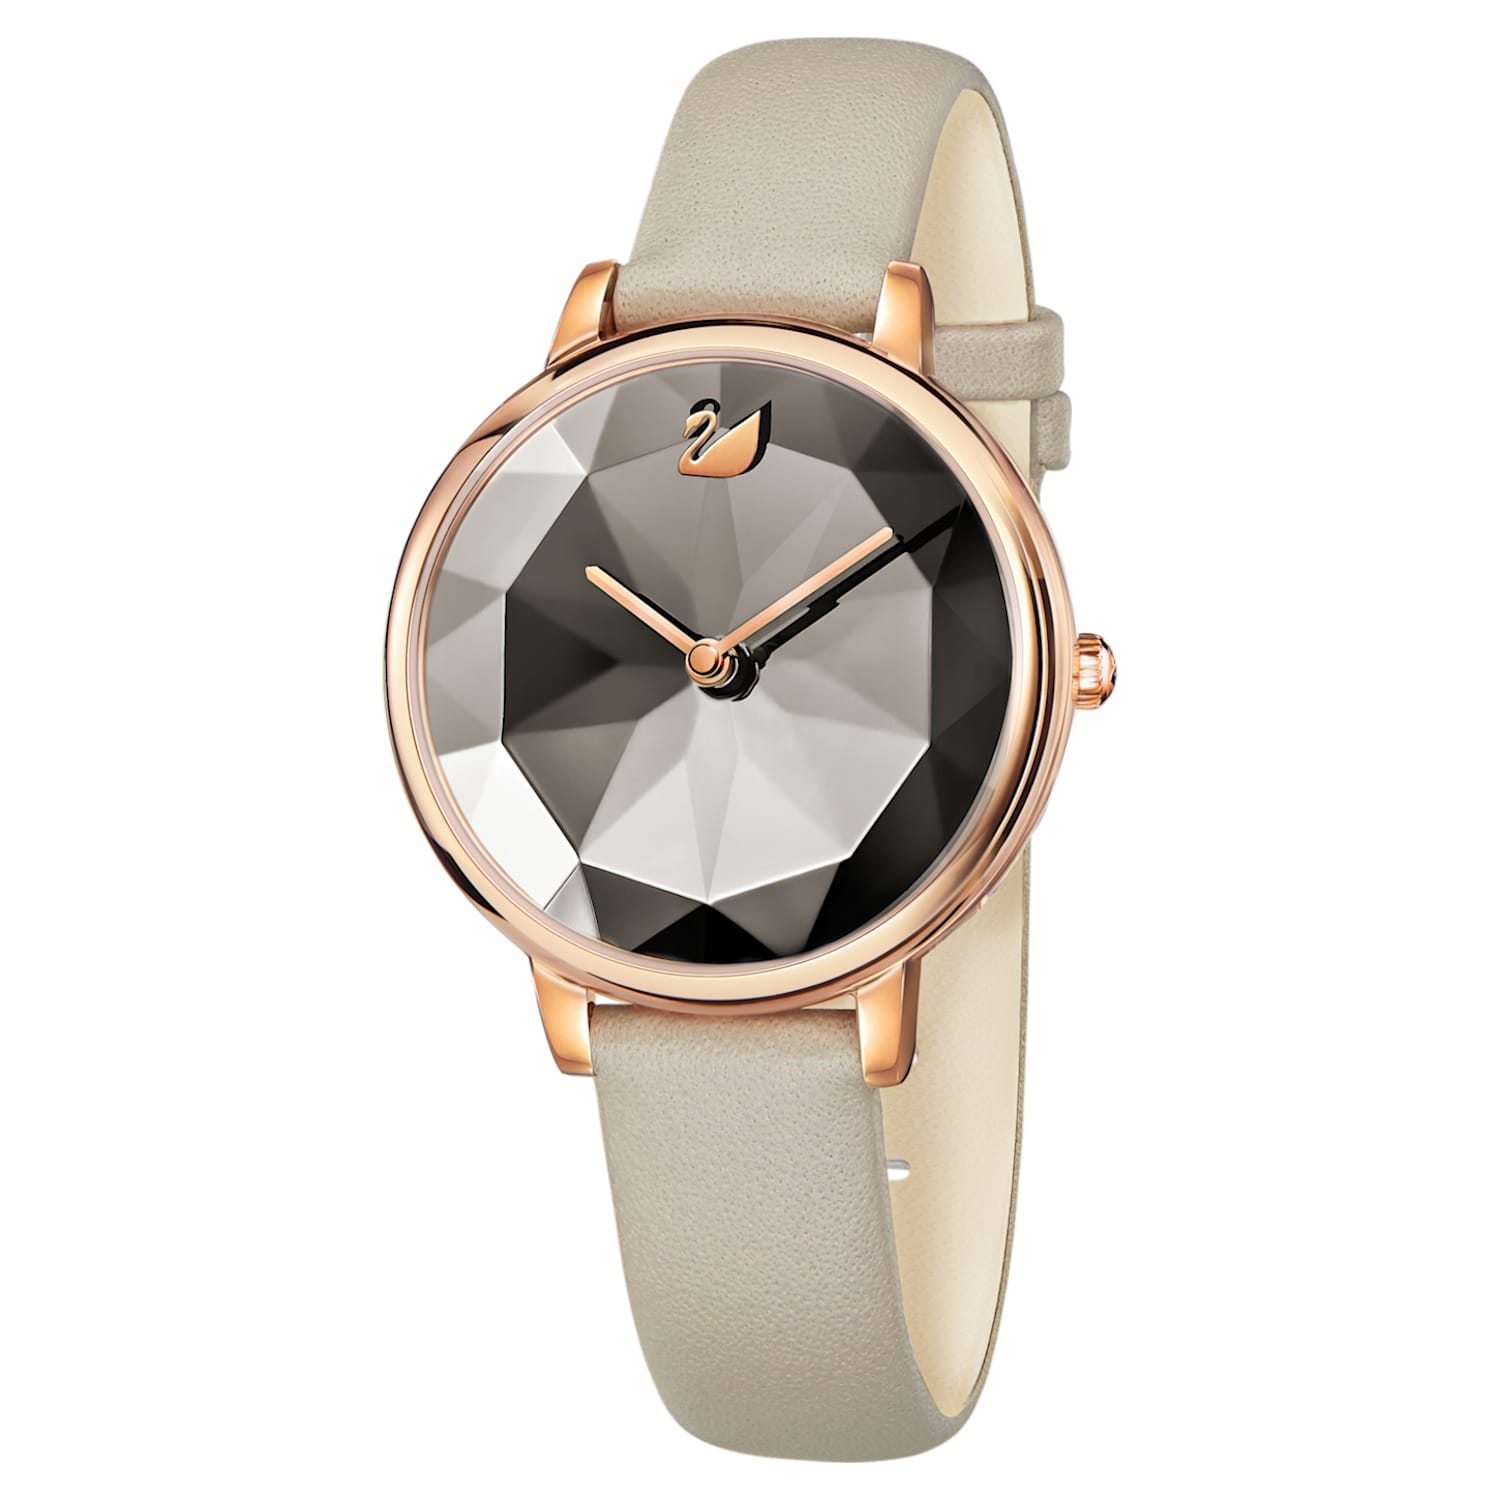 Crystal Lake Watch, Leather strap, Gray, Rose-gold tone PVD